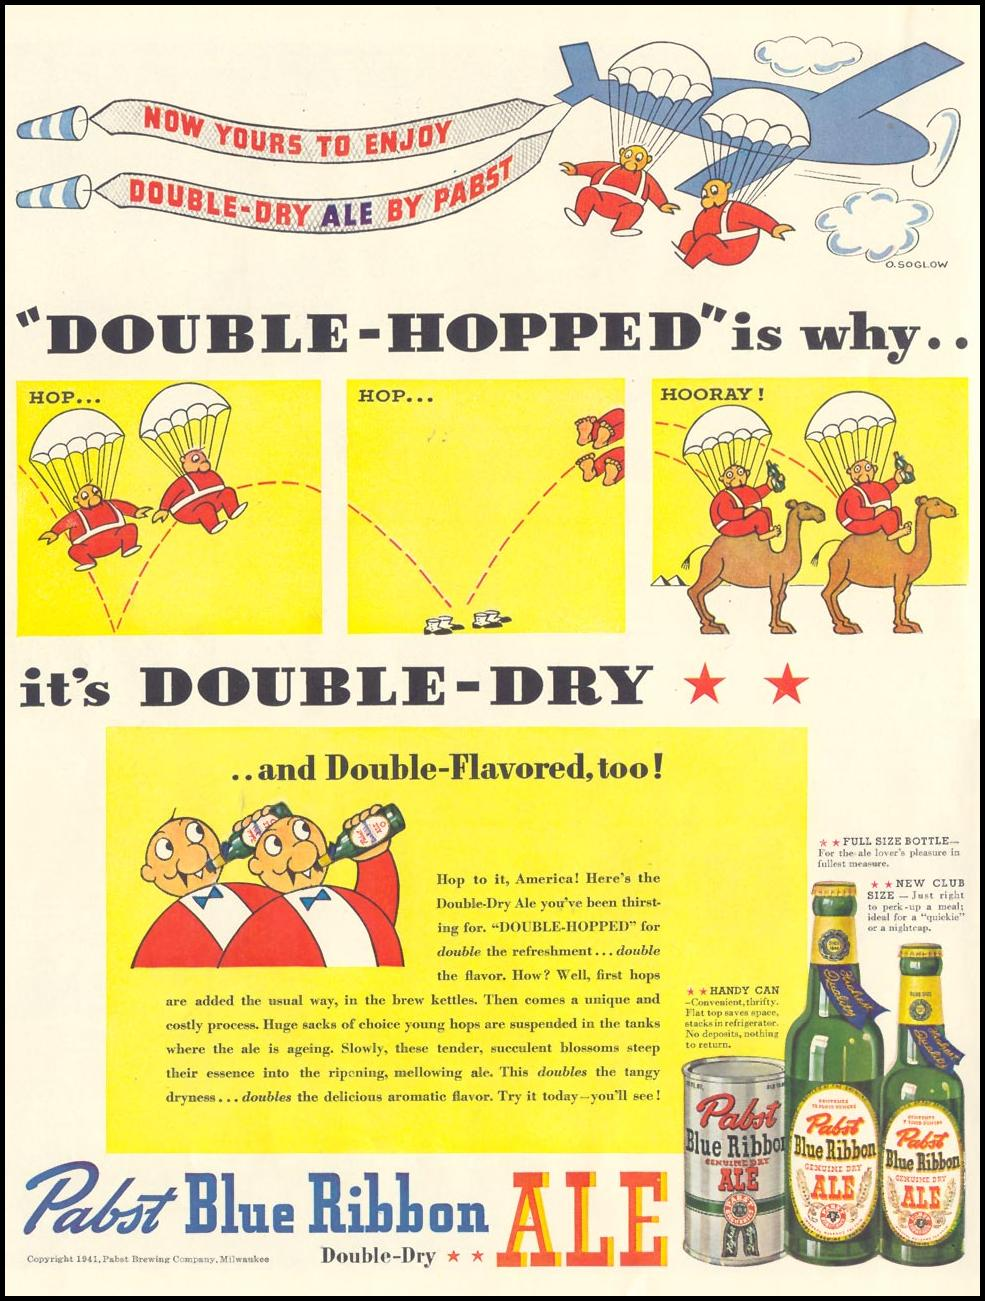 PABST BLUE RIBBON DOUBLE-DRY ALE LIFE 10/13/1941